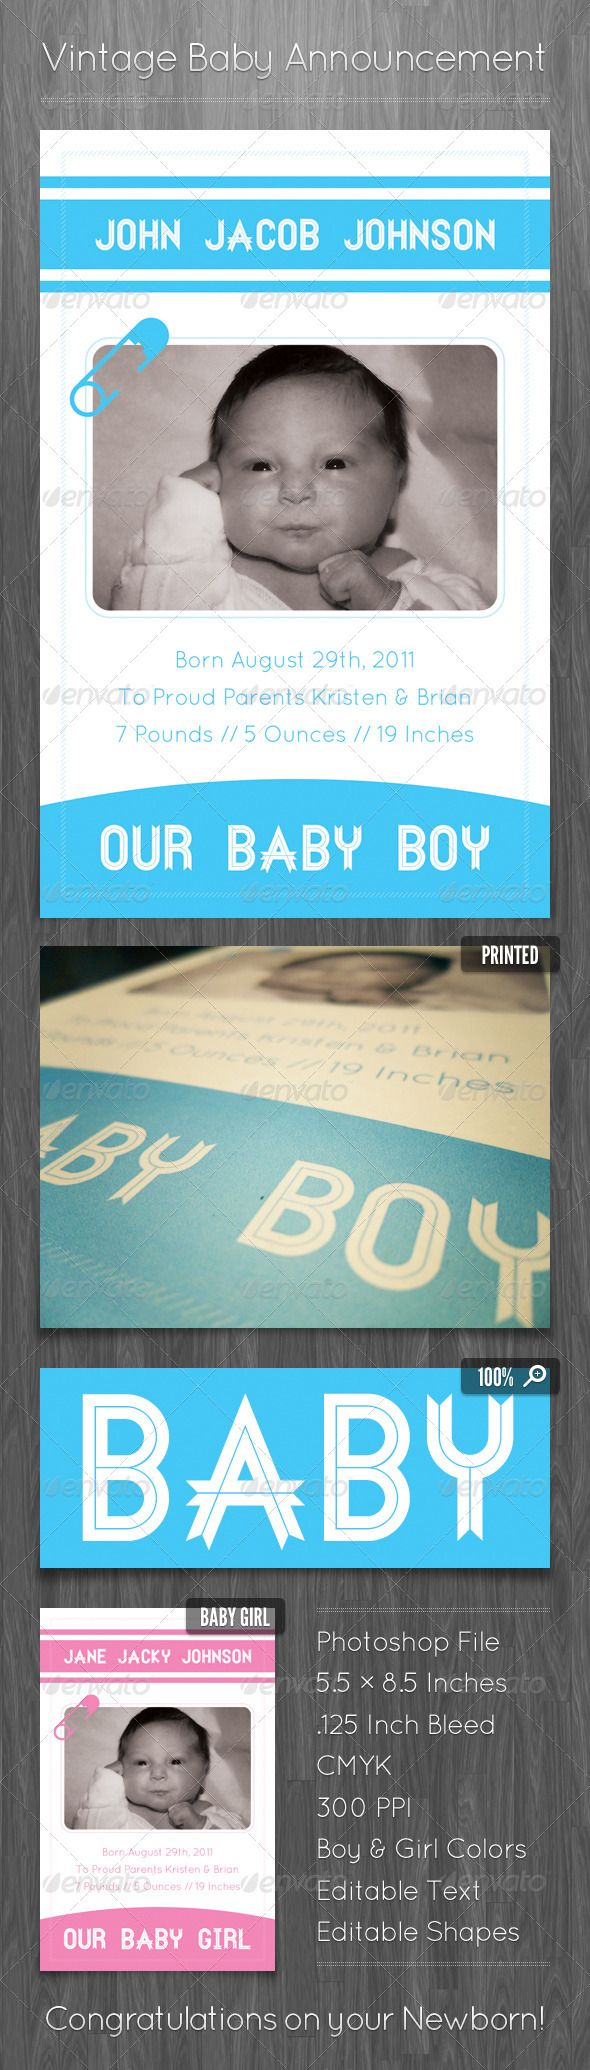 Vintage Baby Announcement Template 173 best Print